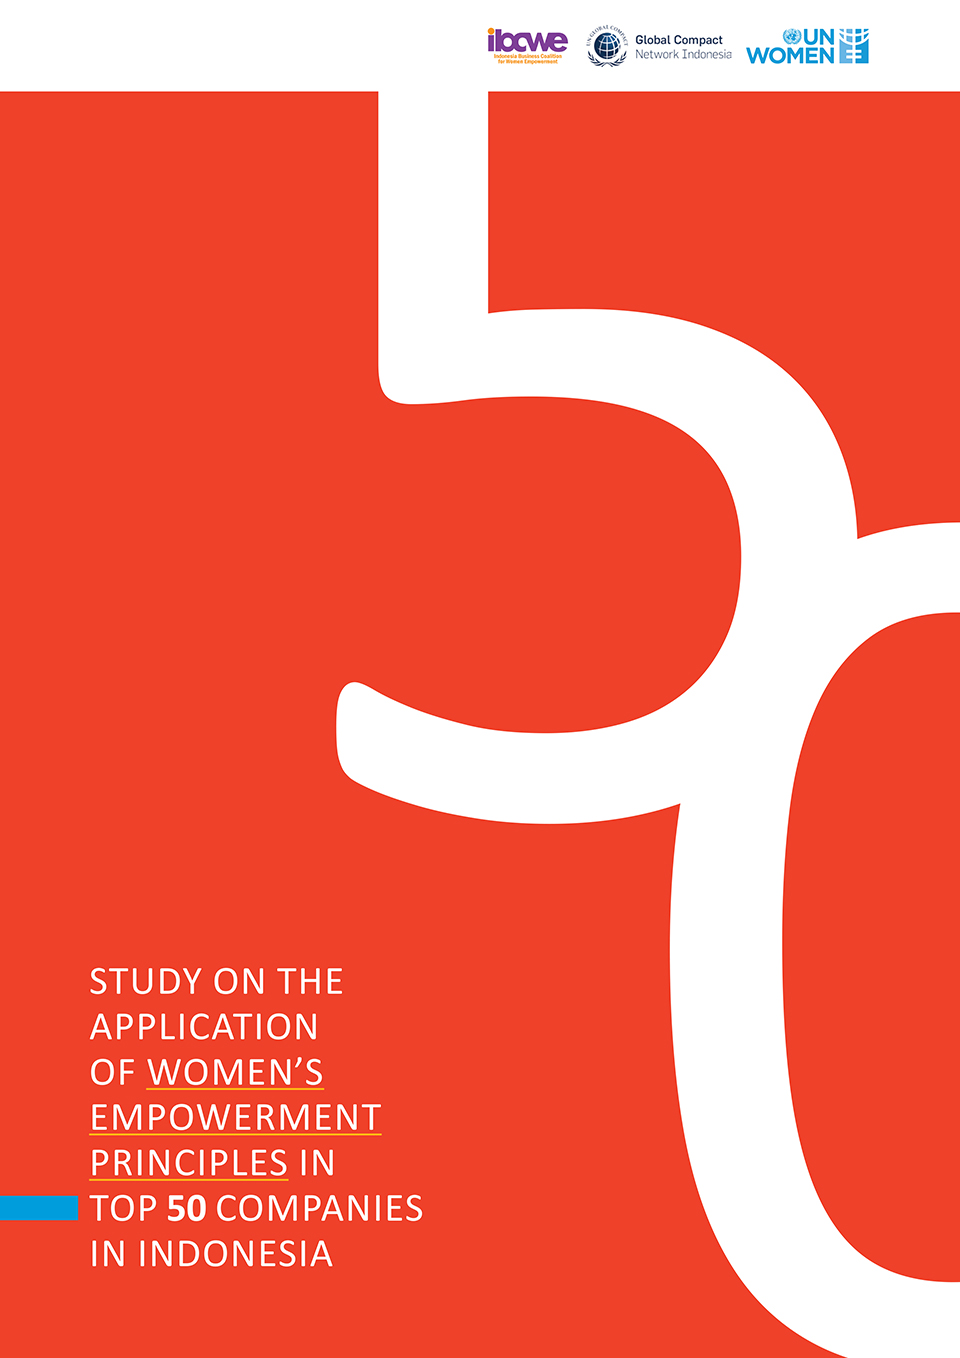 Study on the Application of Women's Empowerment Principles in Top 50 Companies in Indonesia